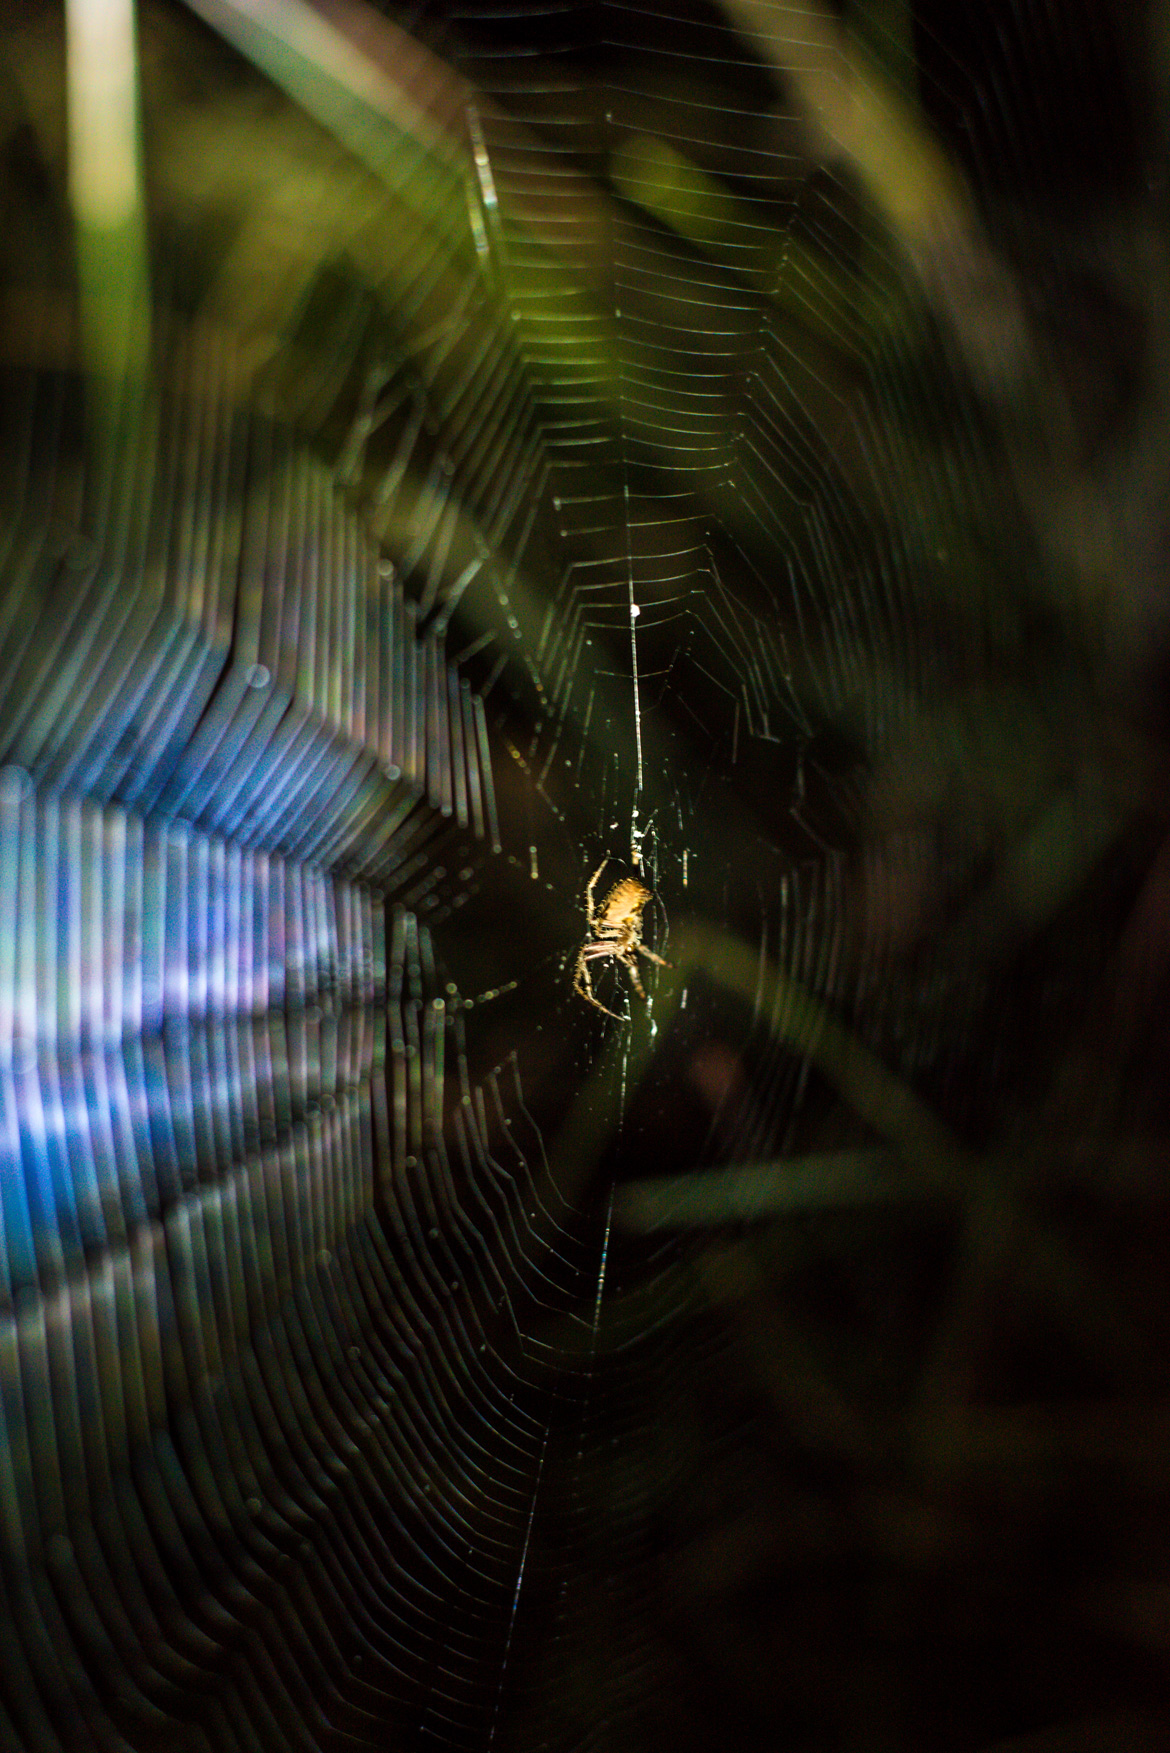 Spiders build a variety of different webs to trap their prey.